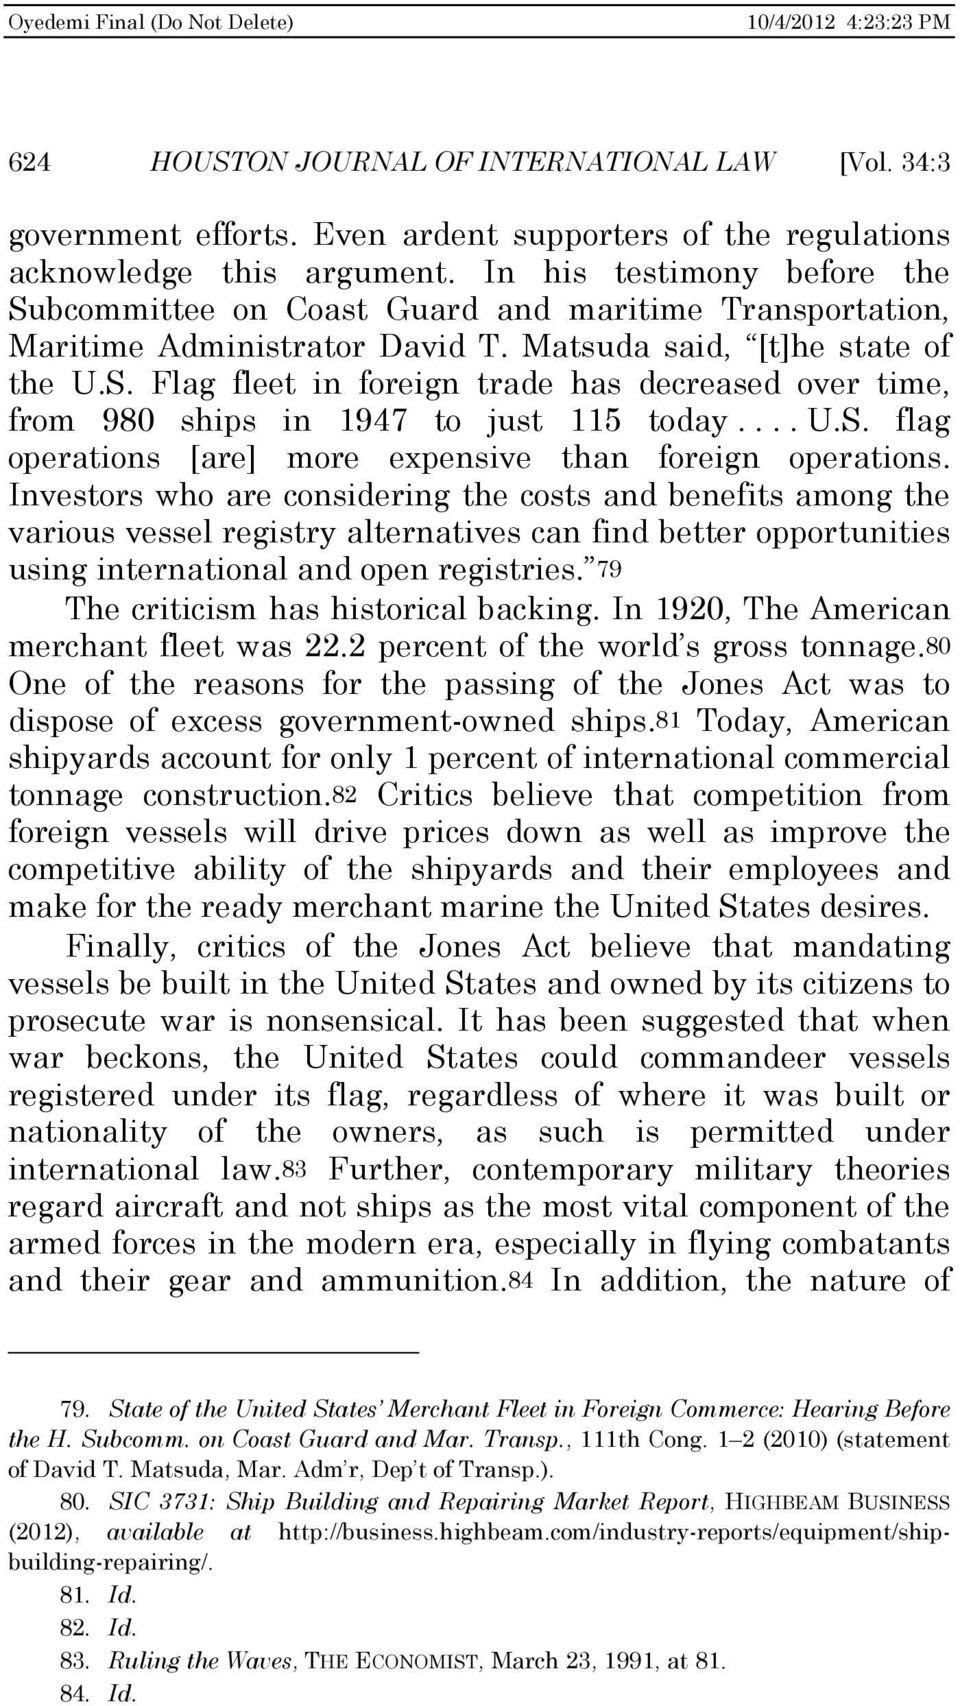 ... U.S. flag operations [are] more expensive than foreign operations.